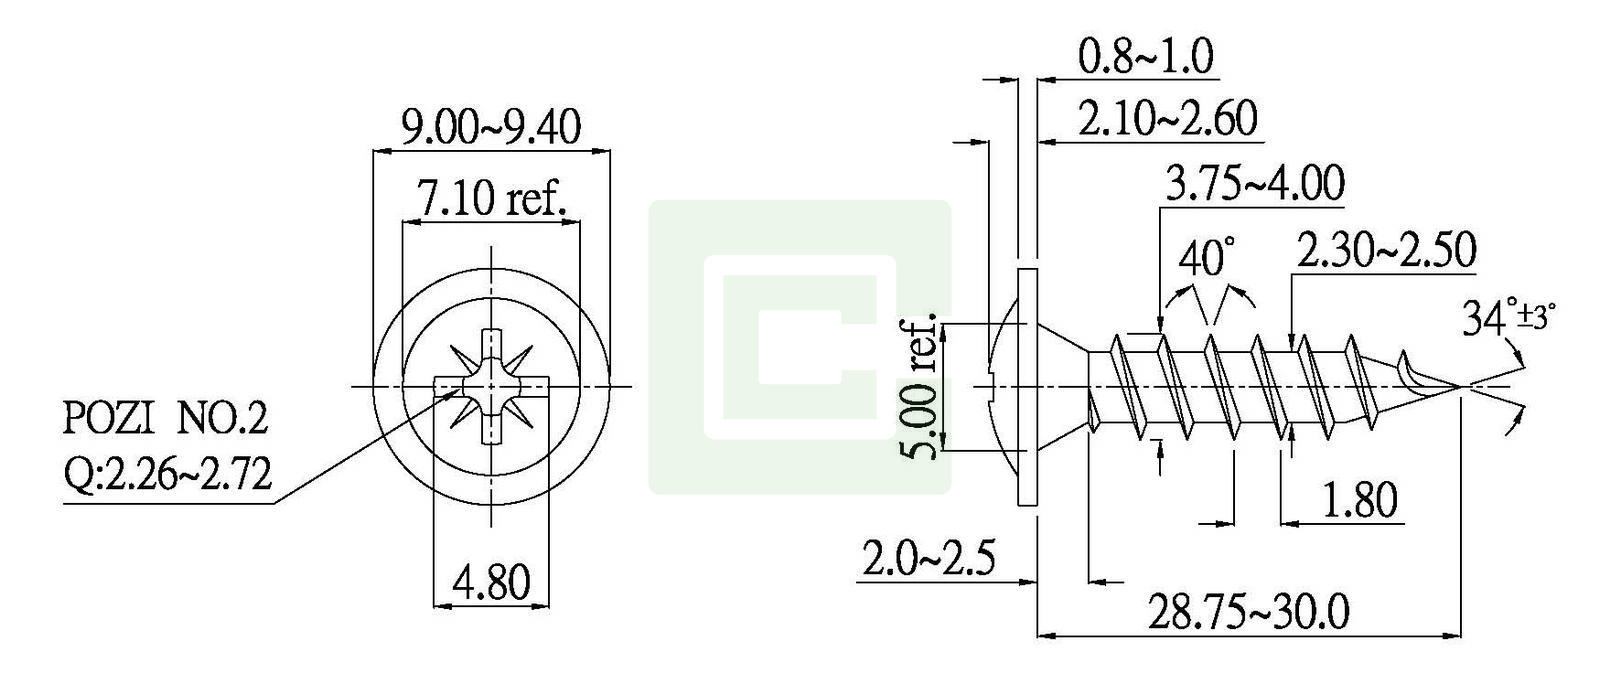 chipboard screw - cs-pwz40-40030. chipboard screw